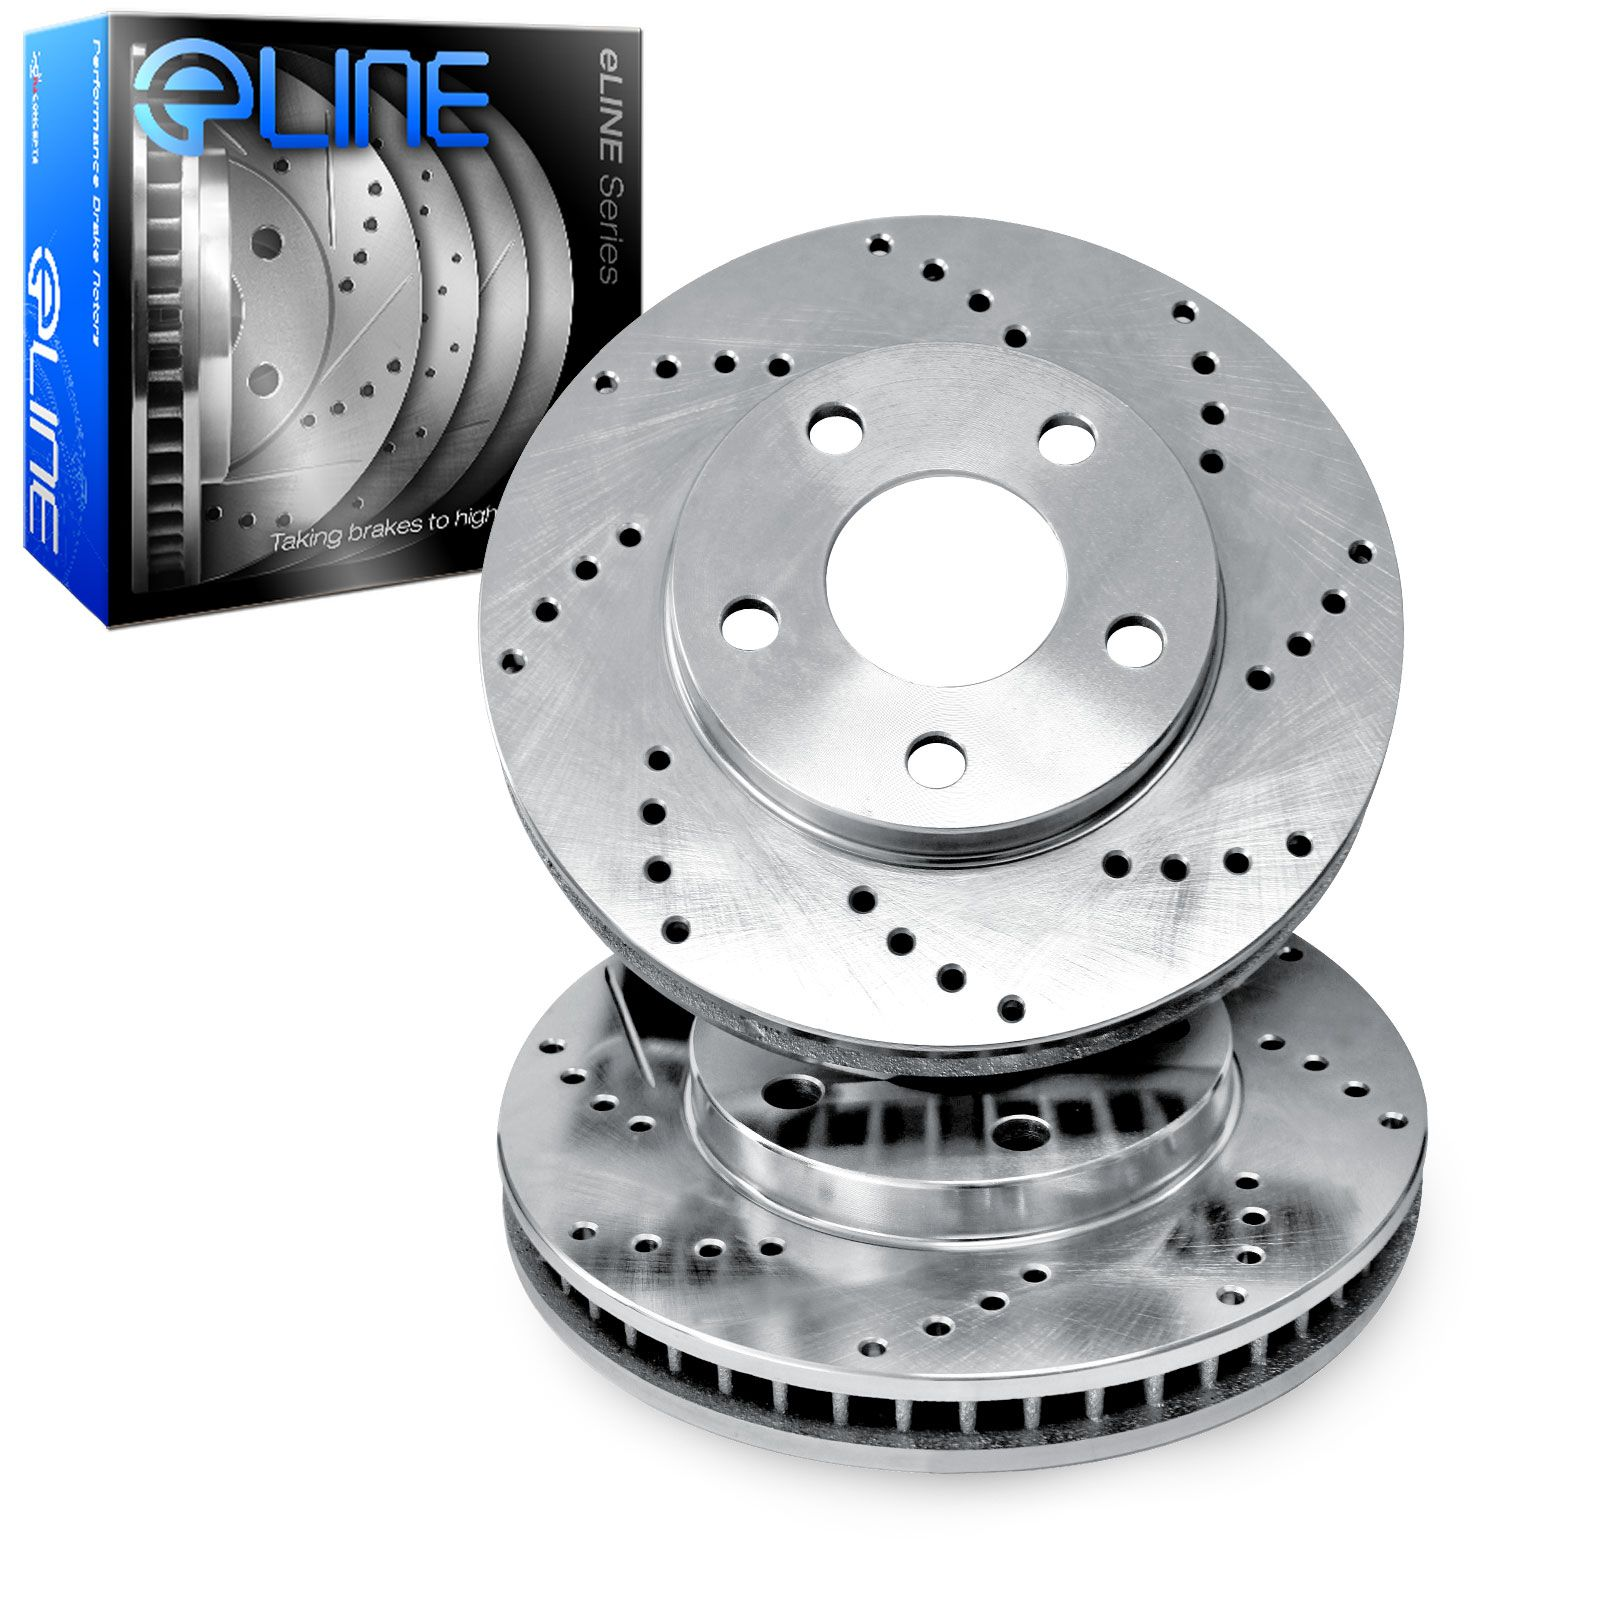 Cross Drilled Rotors >> Brake Rotors 2 Front Eline Cross Drilled Performance Disc Rs13038